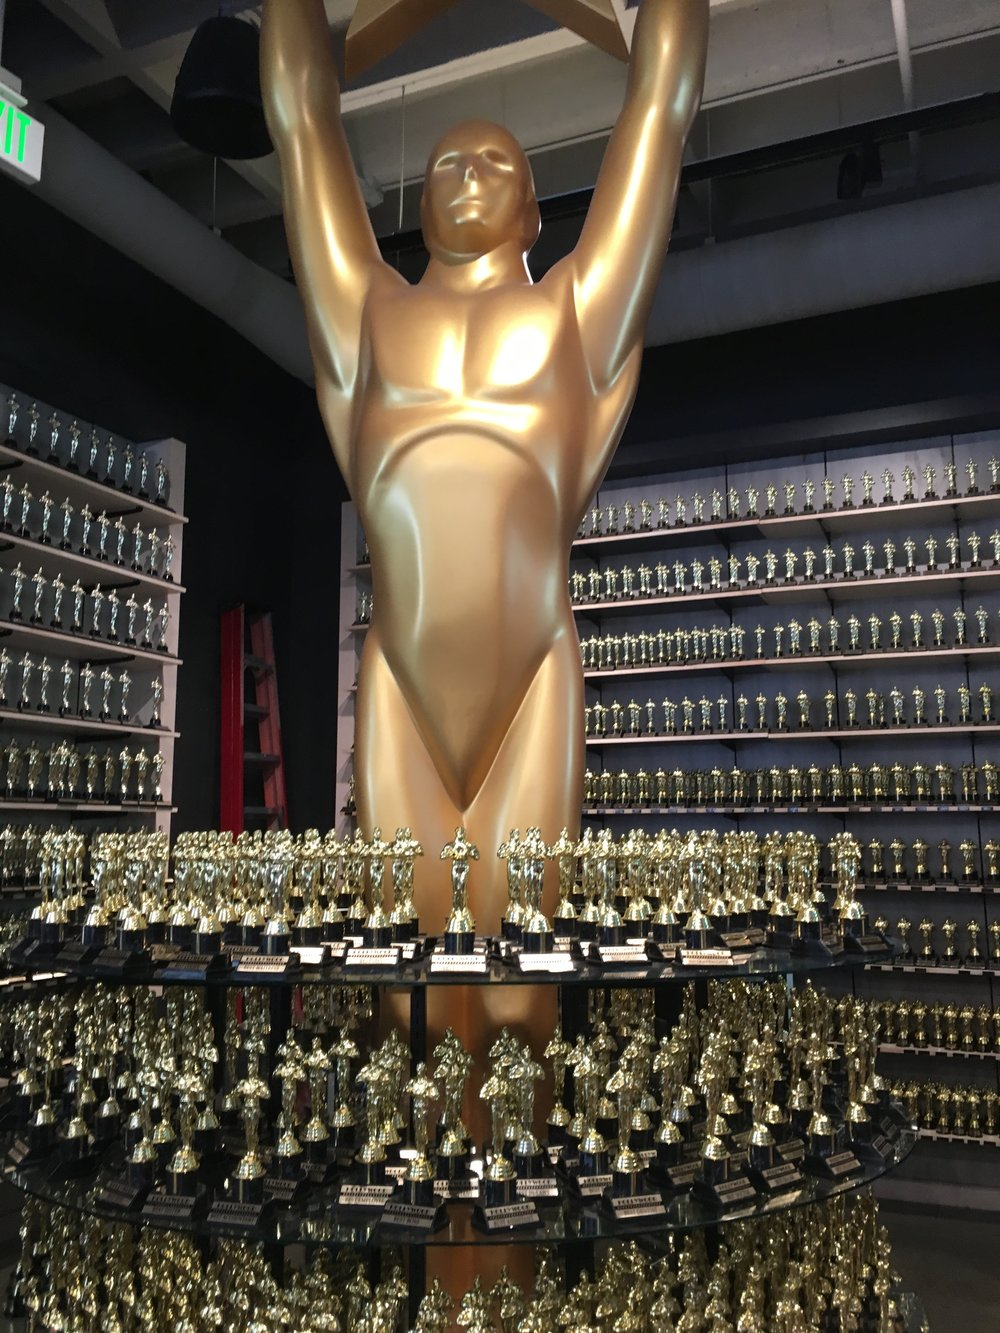 You could get your own Oscar for only 10 bucks! Not gold plated... plastic.